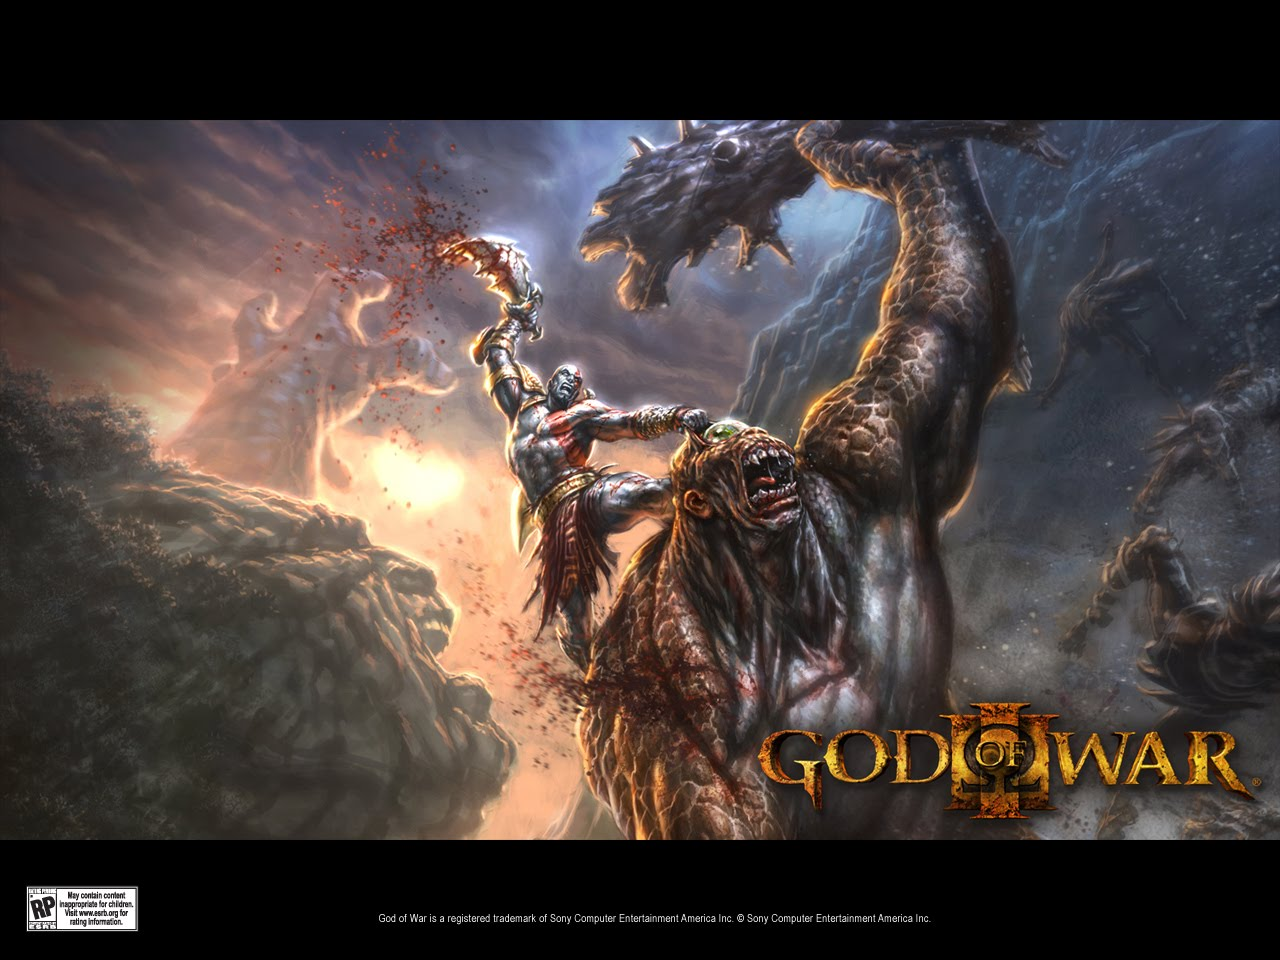 http://4.bp.blogspot.com/-x6Y1dcgFXhY/TZgSOGYERsI/AAAAAAAAIFk/pwQ477fDDPw/s1600/Cnbc_Top_Video_Games_of_2010_God_Of_War_3_Wallpapers_2.jpg